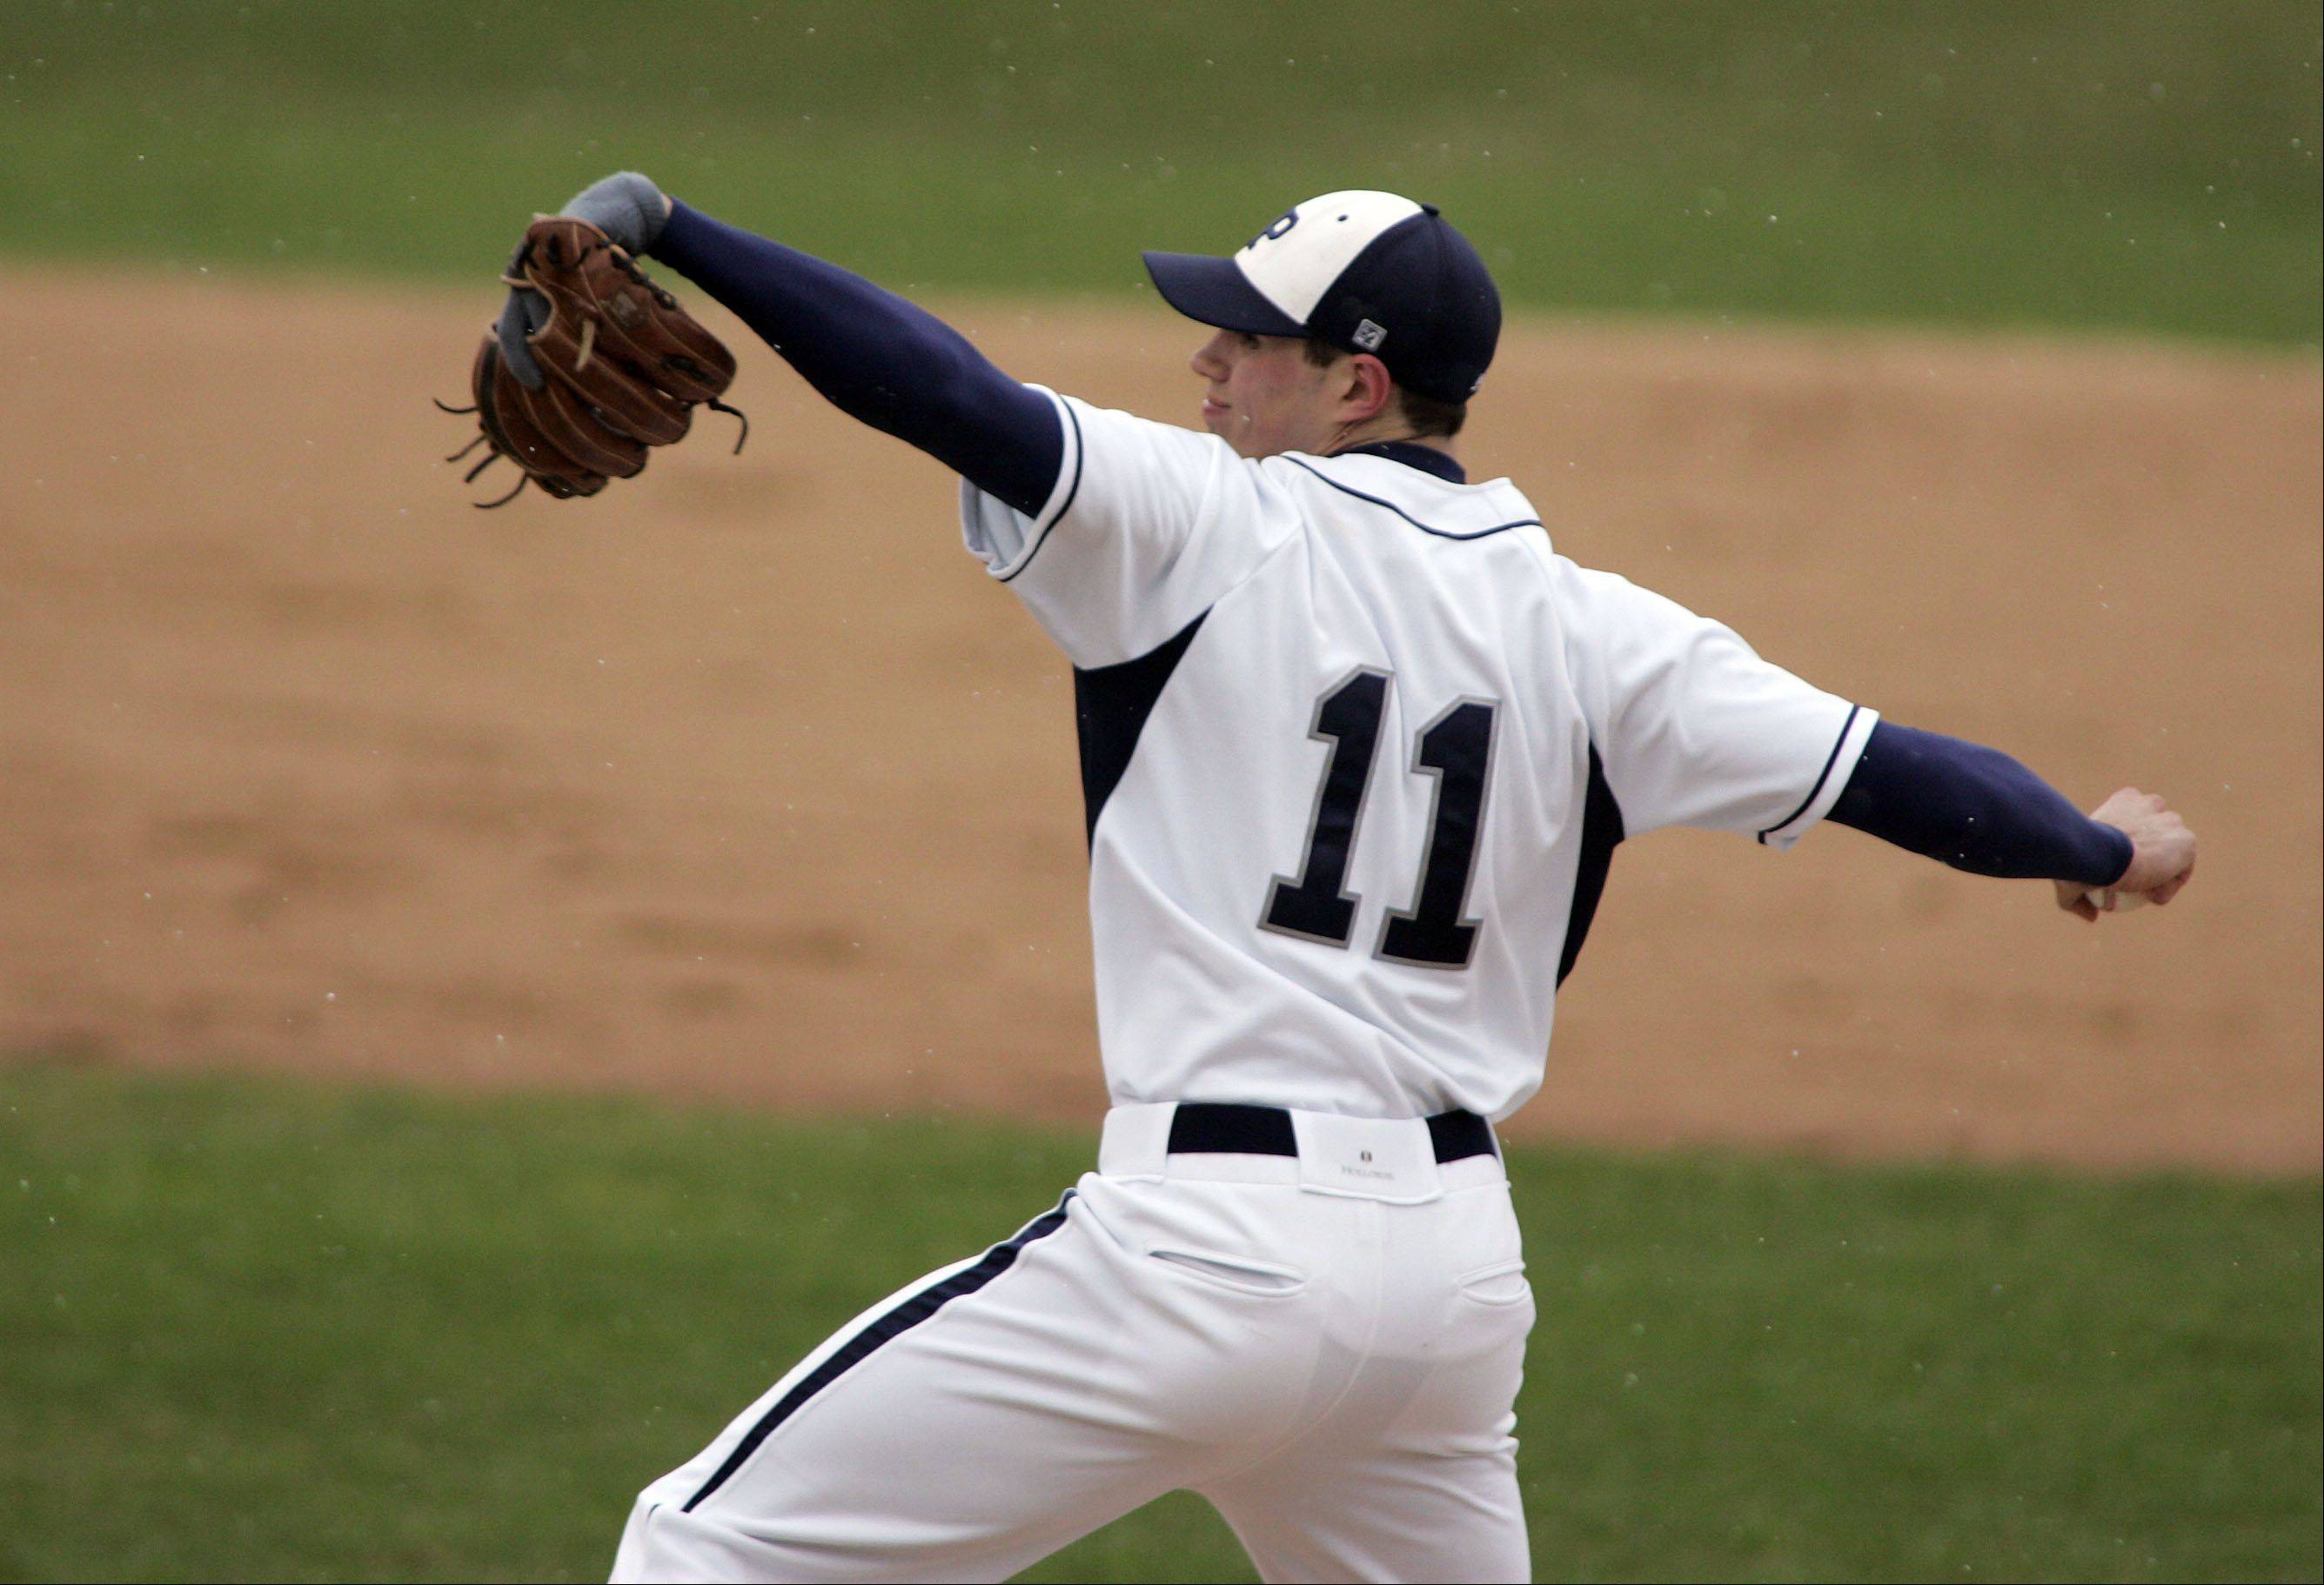 Lake Park's Eric Vatch delivers to the plate against Larkin Friday at Boomers Stadium in Schaumburg.